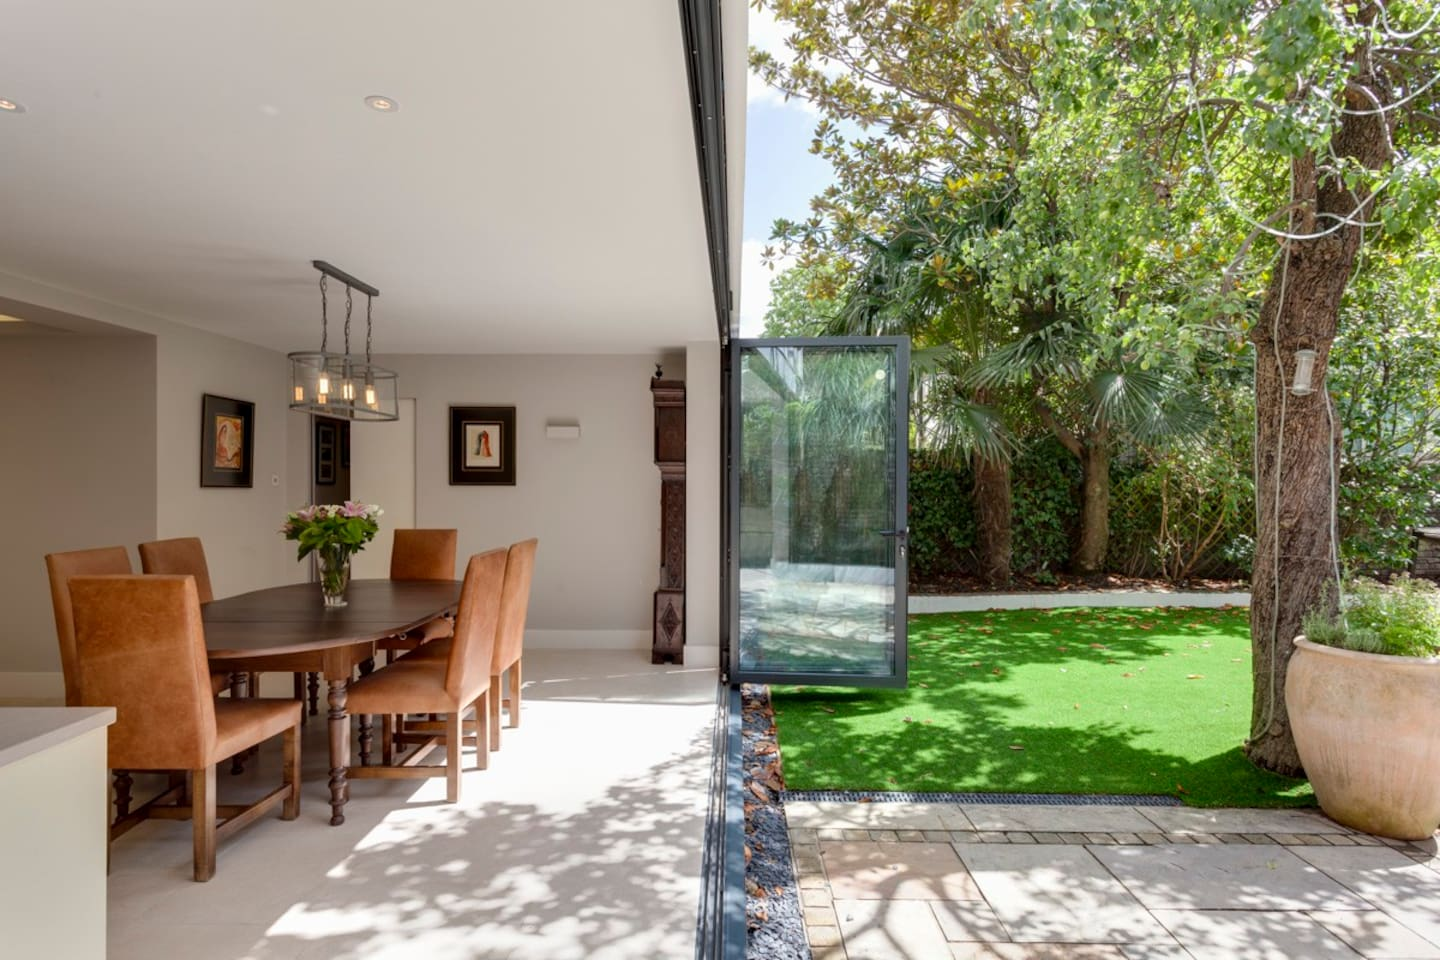 Bi-folding doors fully opened to allow the flat to extend into the garden